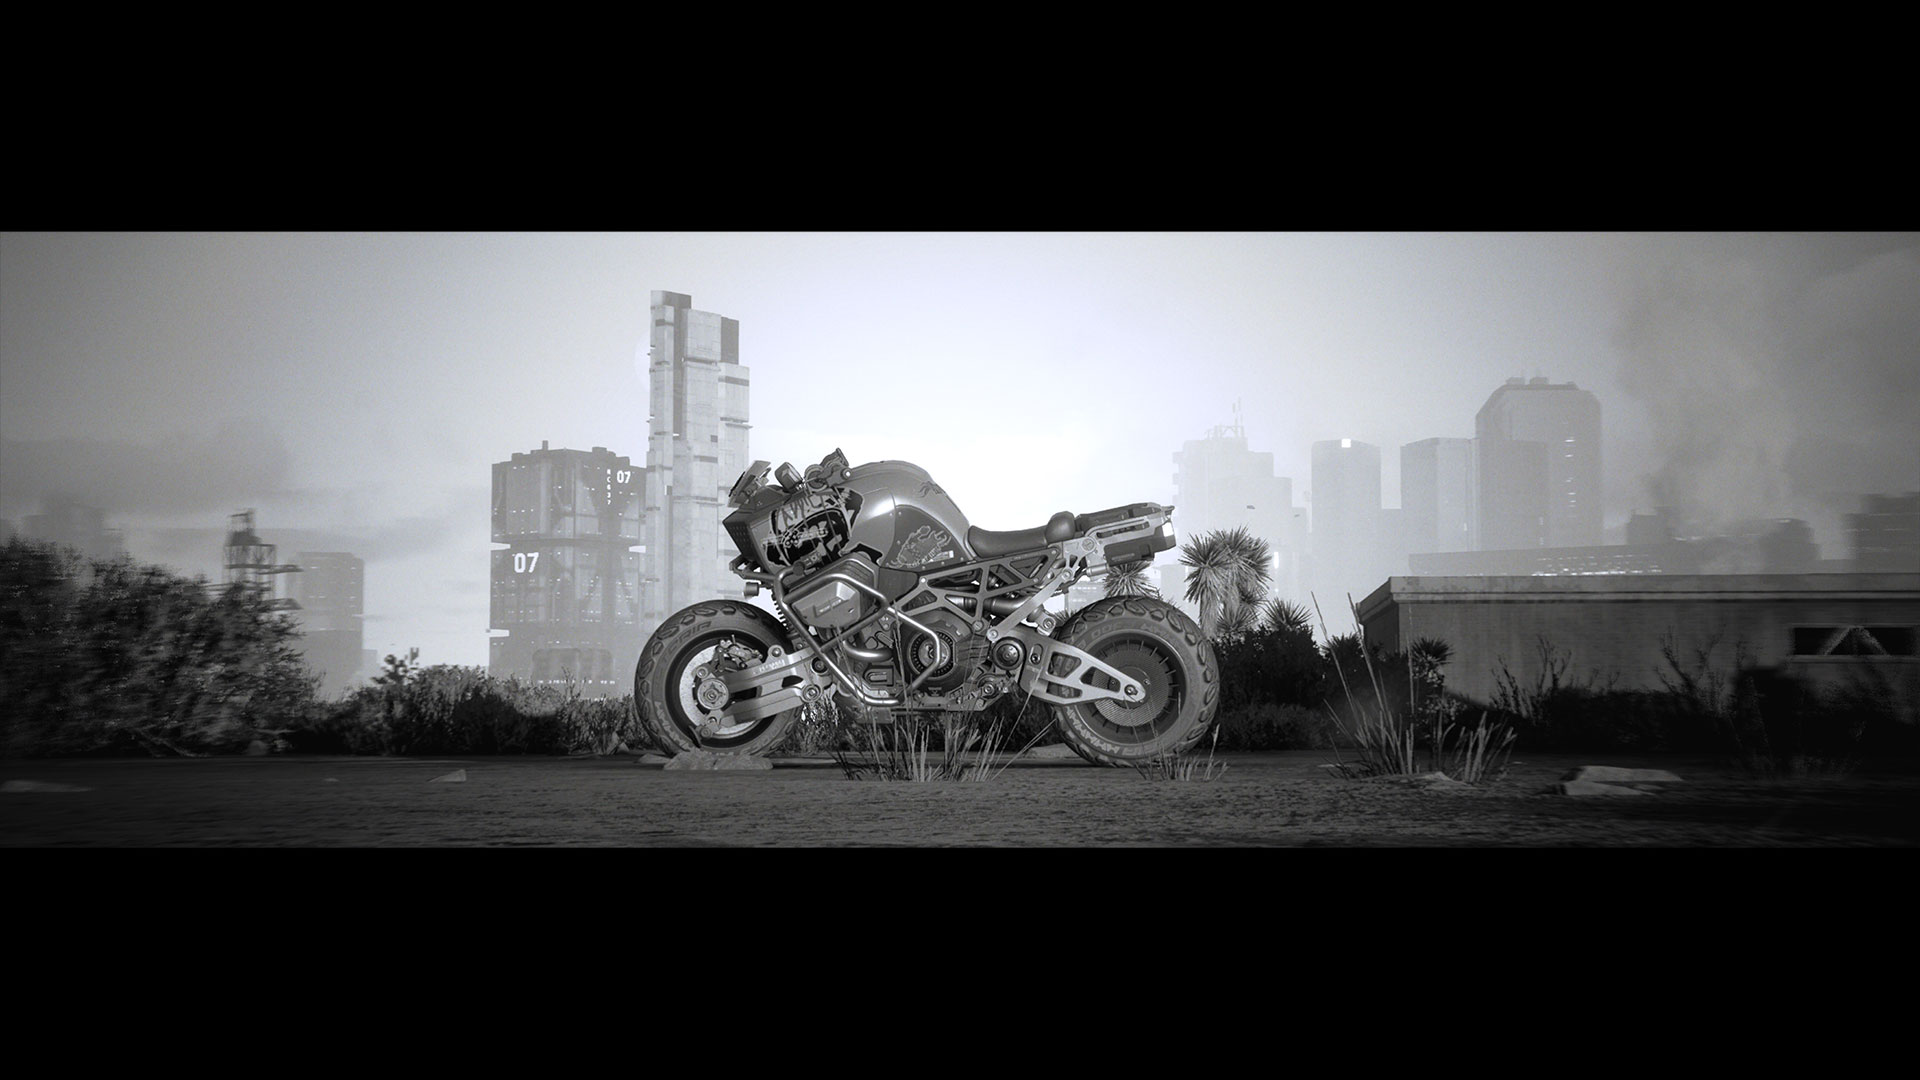 Motorbike against the Night City backdrop